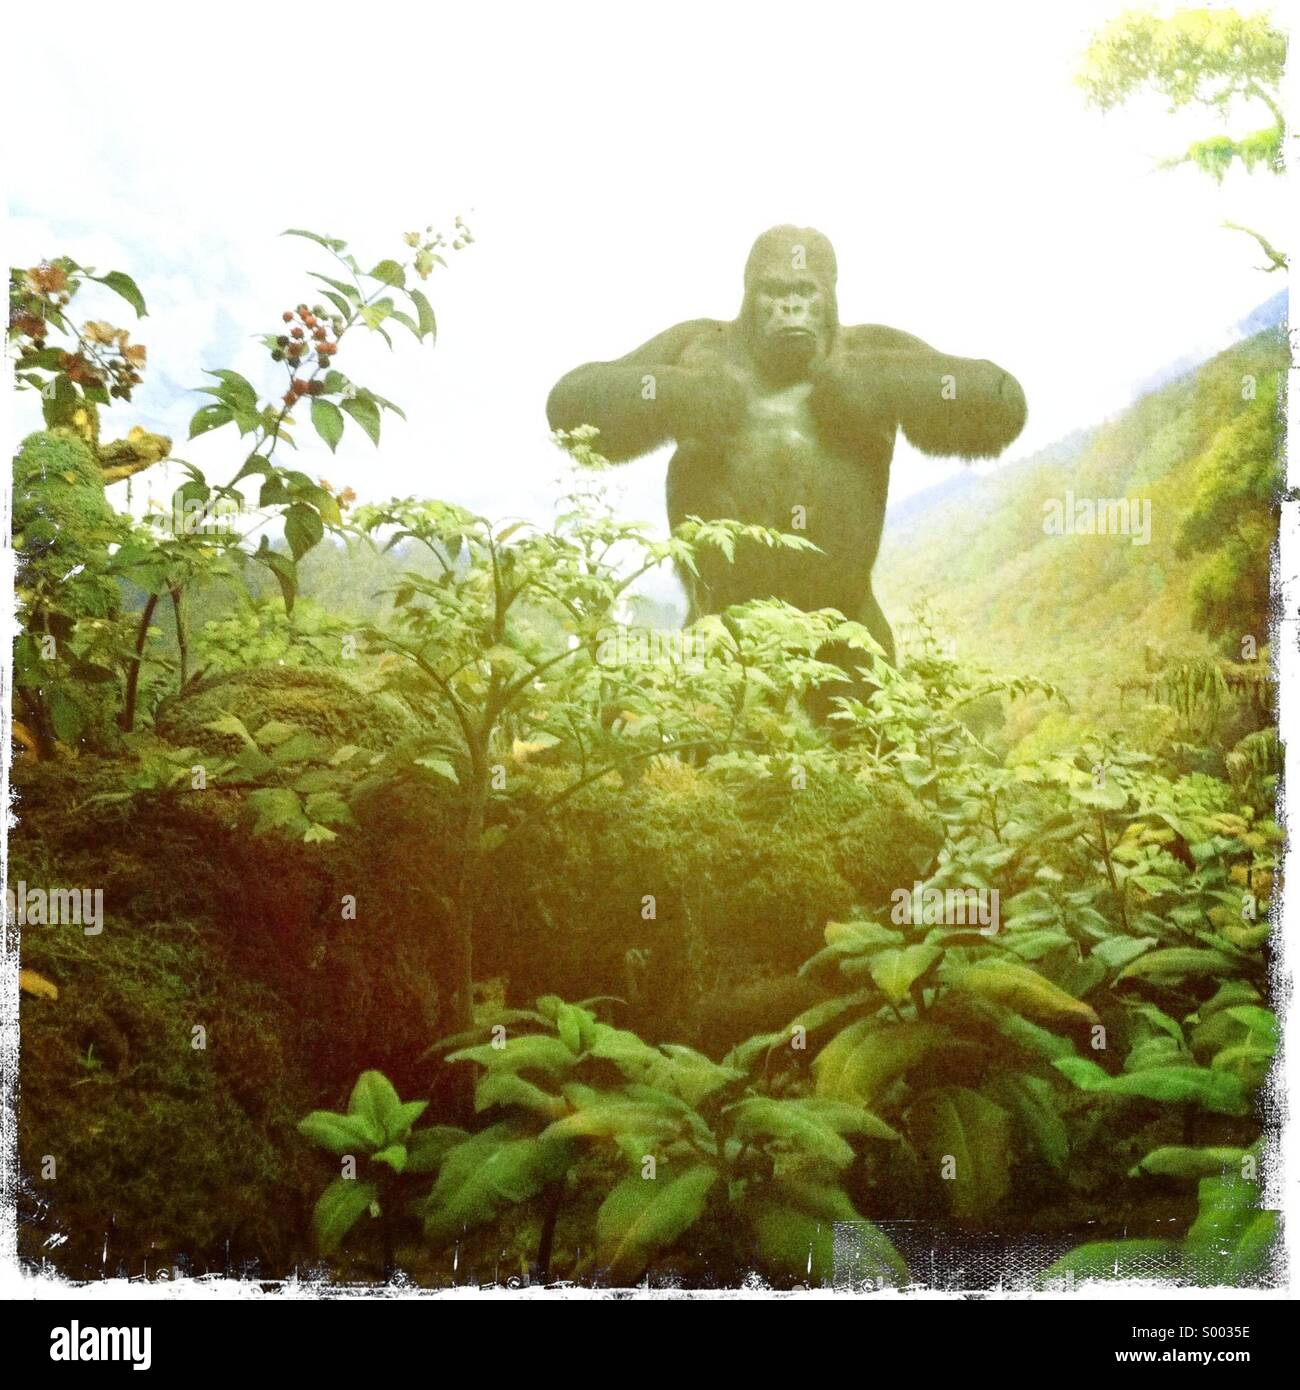 A fake Gorilla in a painted environment - Stock Image